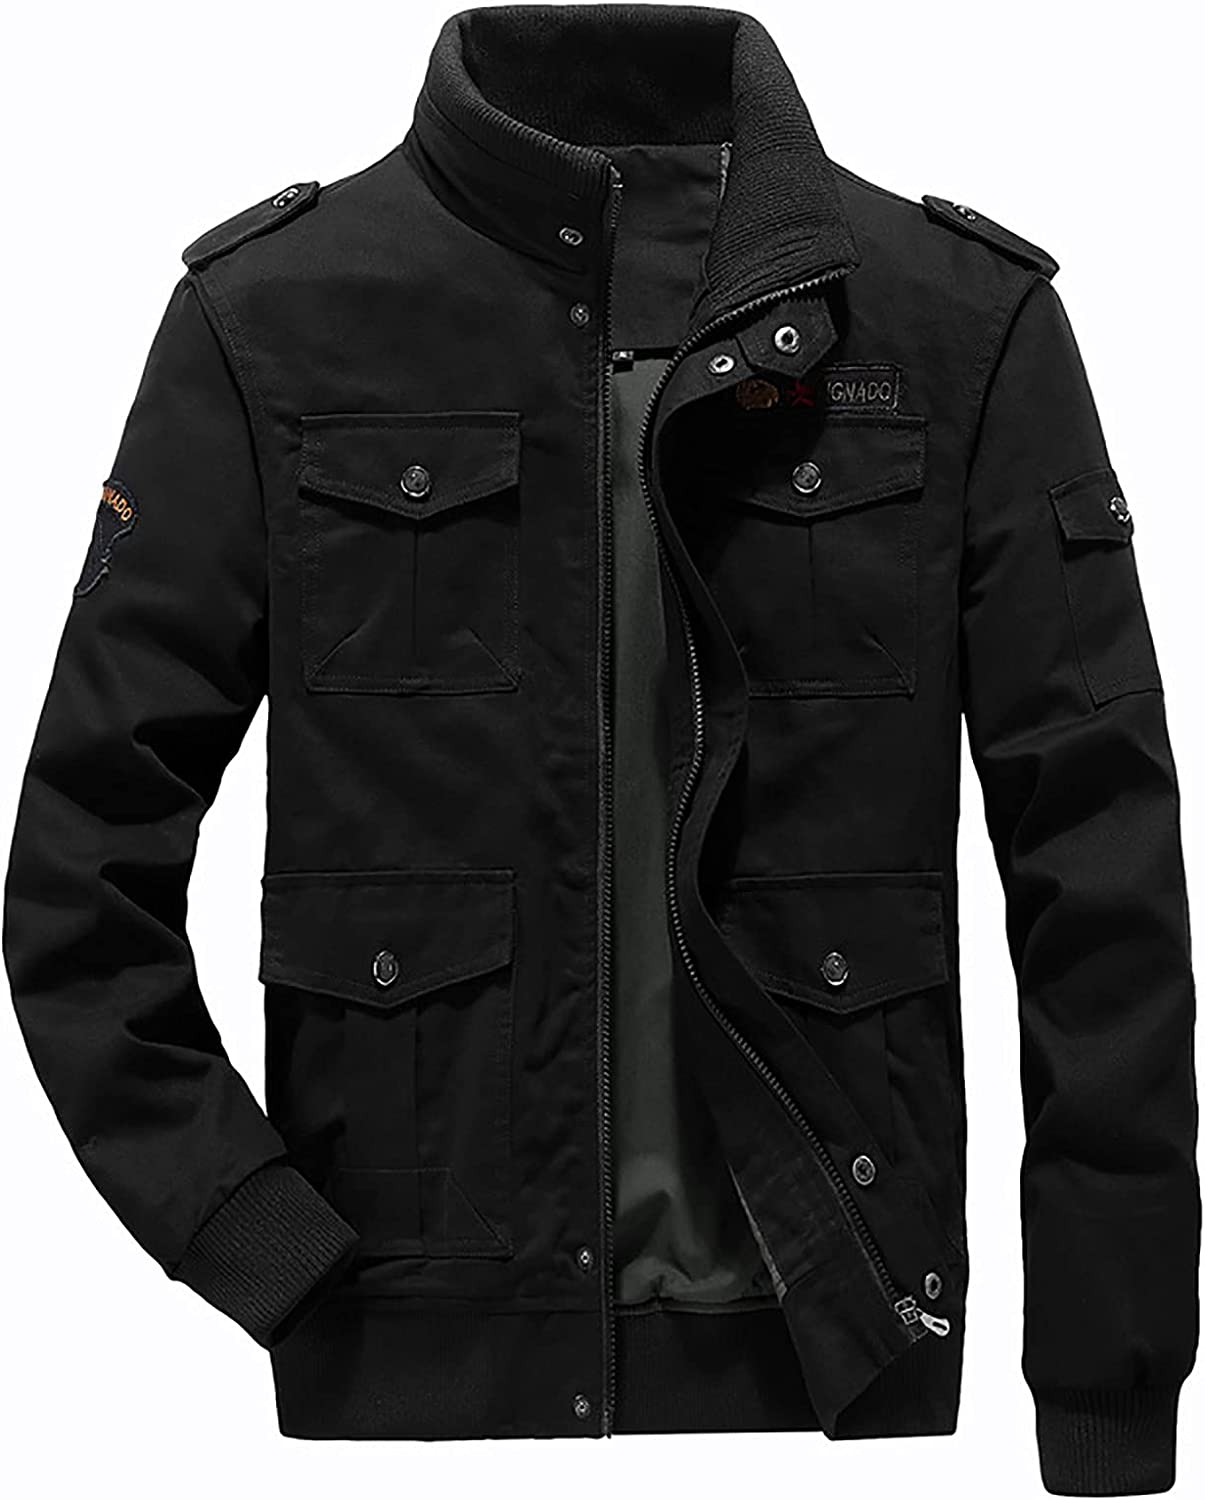 Men's Stand Collar Jacket Autumn And Winter Casual Solid Color Tooling Wind Jacket Zipper Coat